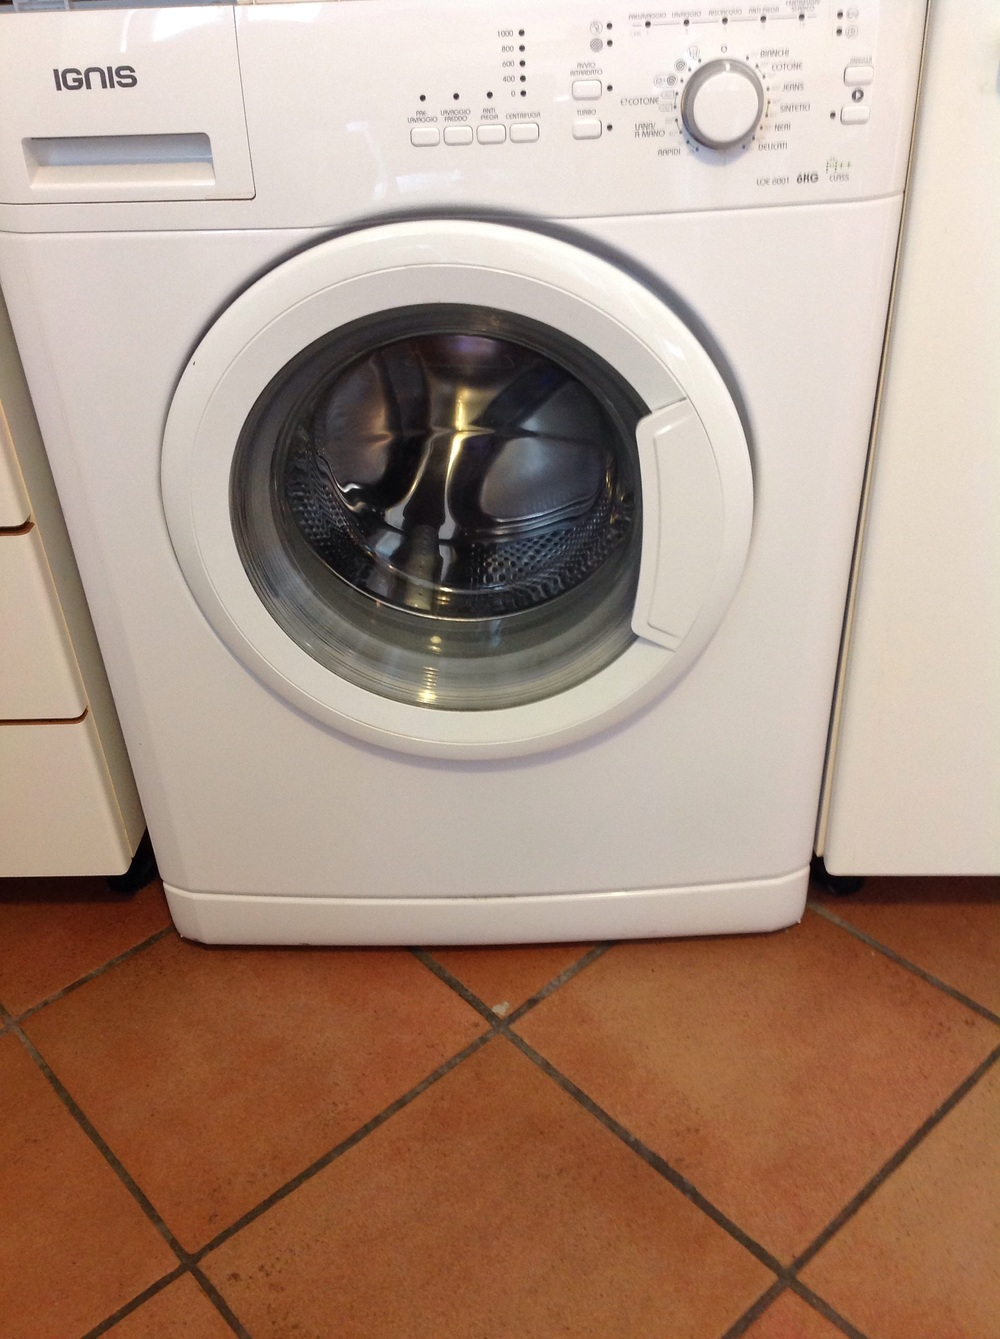 This washer takes 2 hours to wash my clothes and doesn't dry them for me.